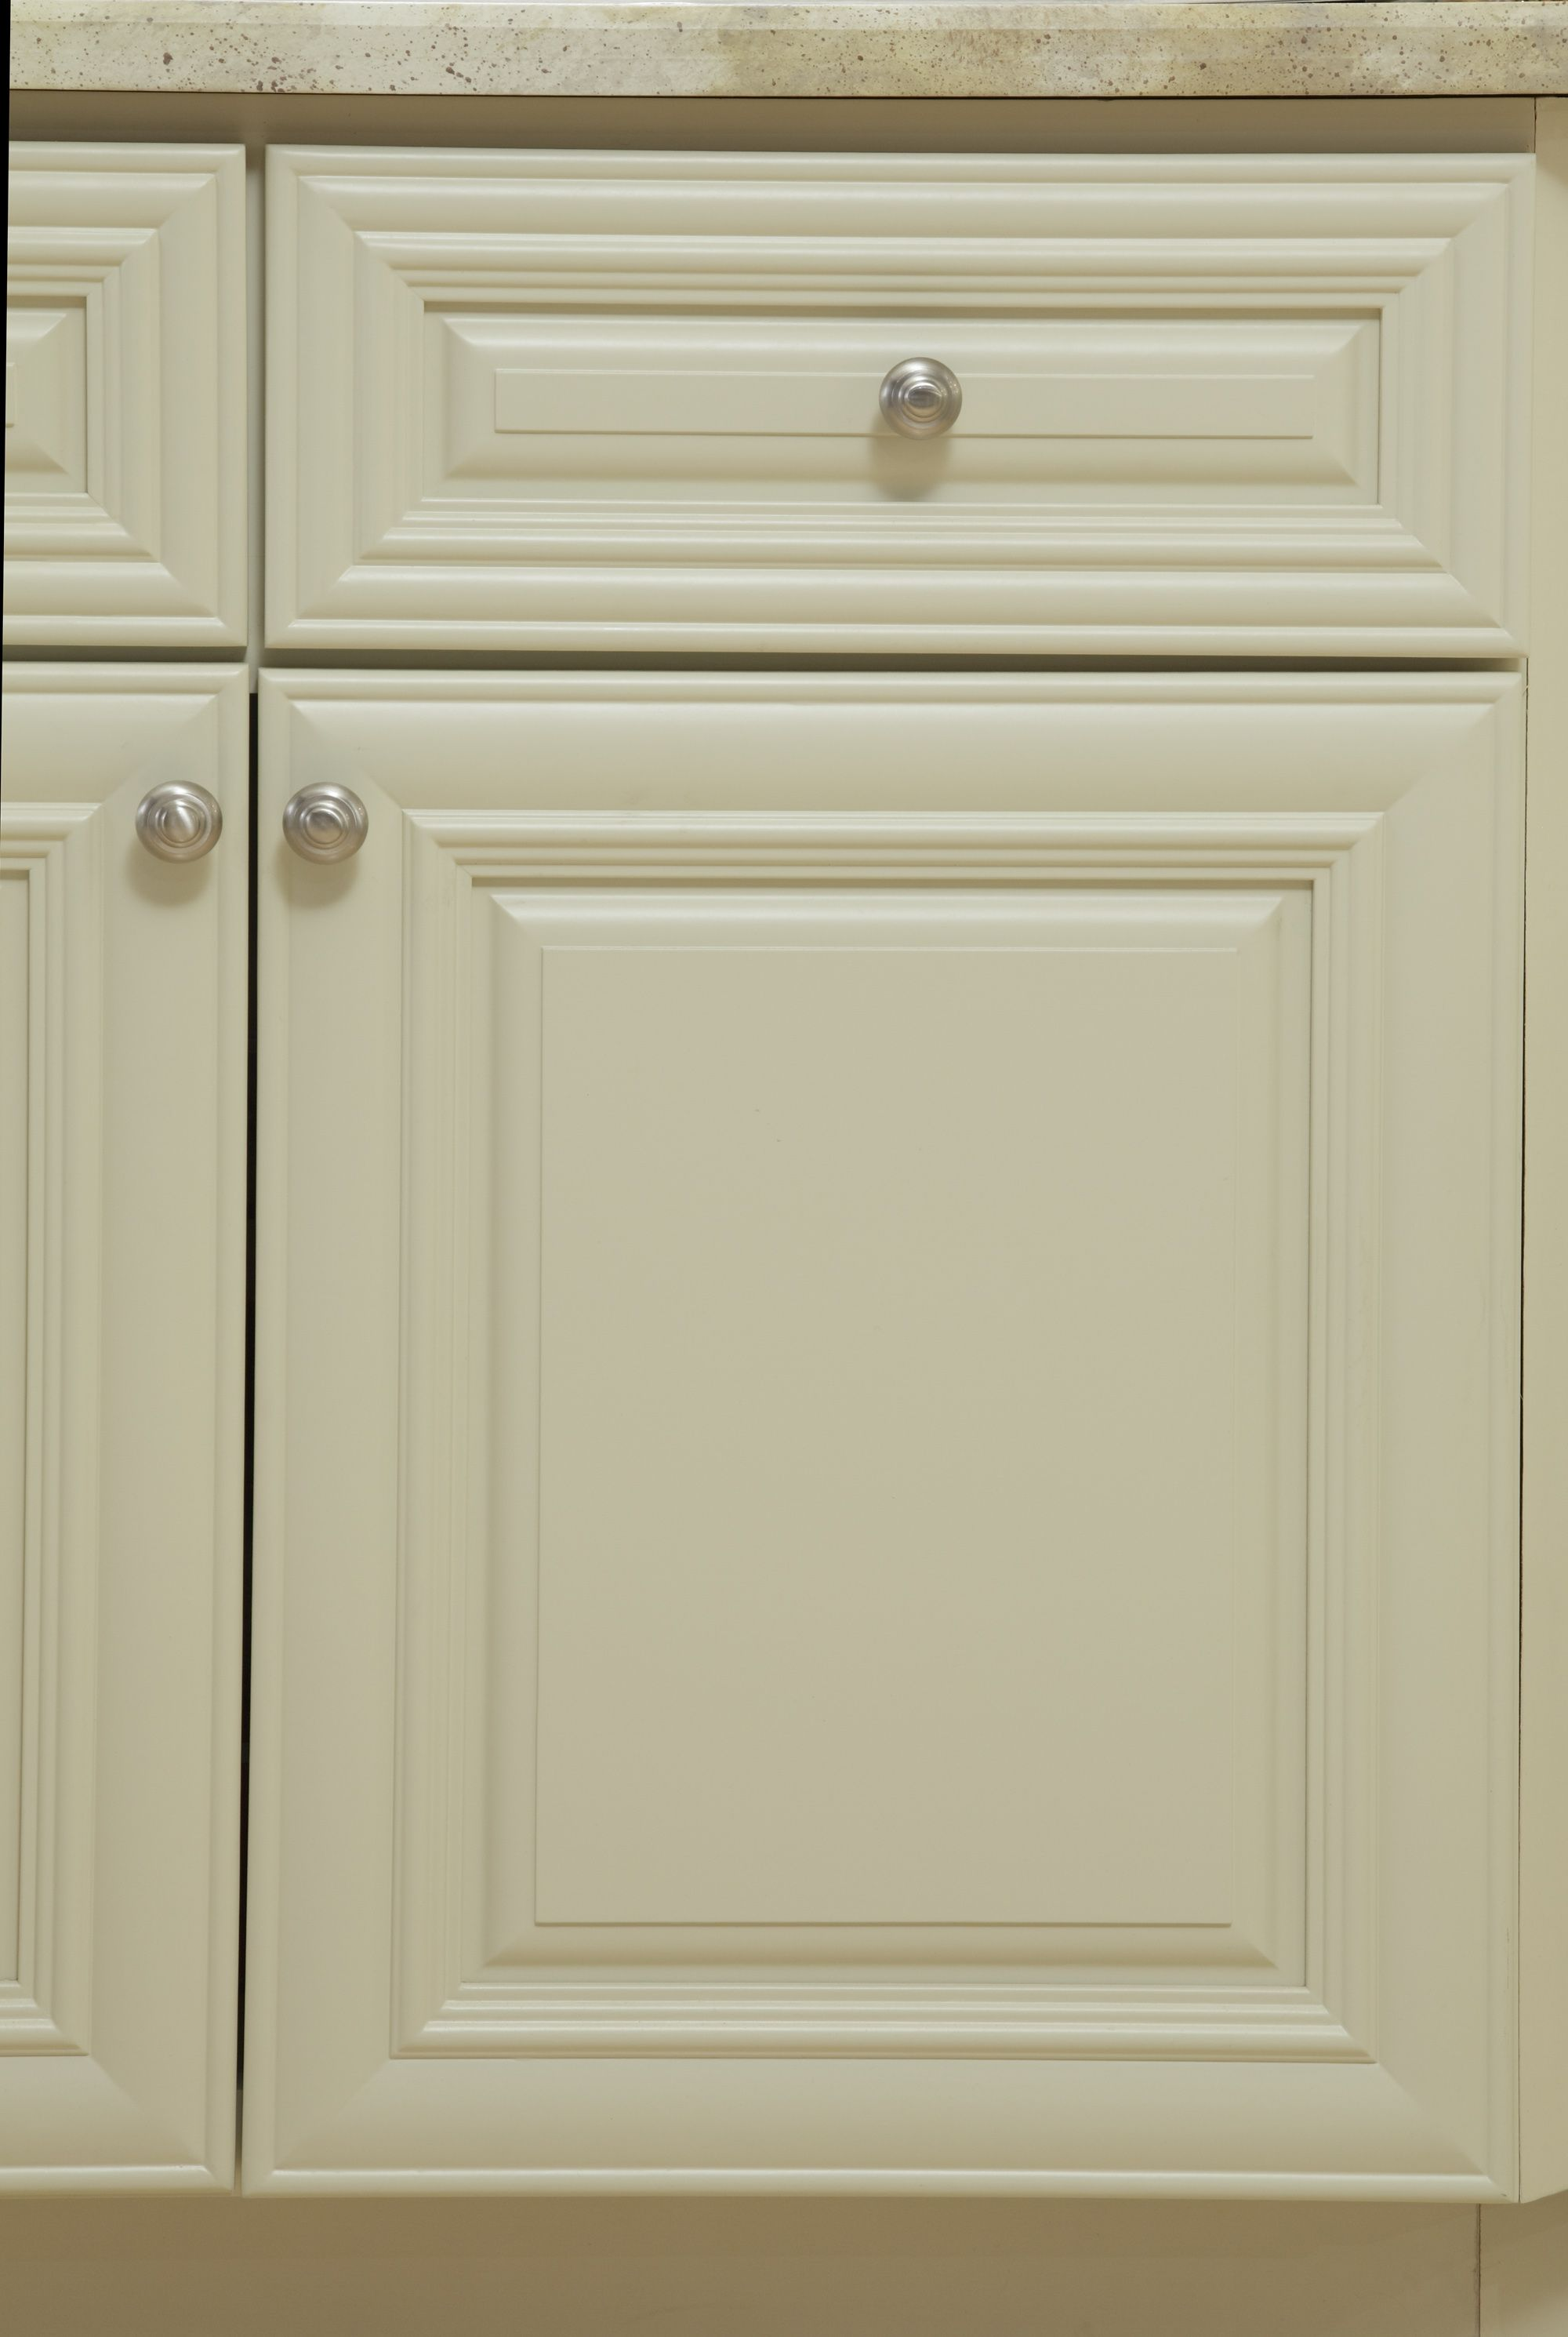 B Jorgsen Co Victoria Ivory White Kitchen Features Soft Closing Drawers High Quality Hinges And Solid Wood Designs Cabinets To Go Cabinet Ivory Kitchen